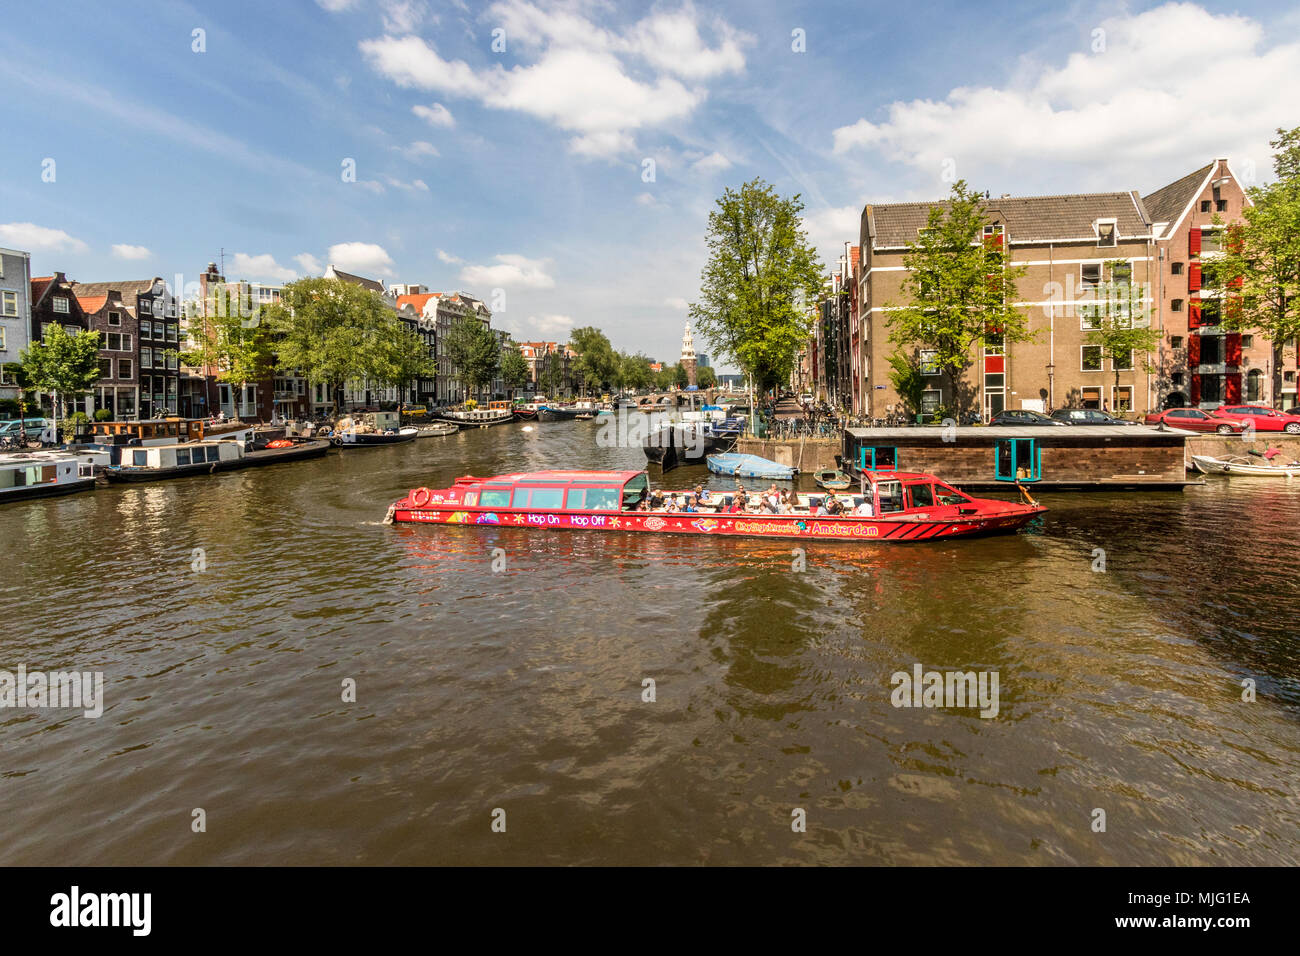 Boats on the 17th Century canal ring taking goods and tourist site seeing round the city of Amsterdam Netherlands - Stock Image